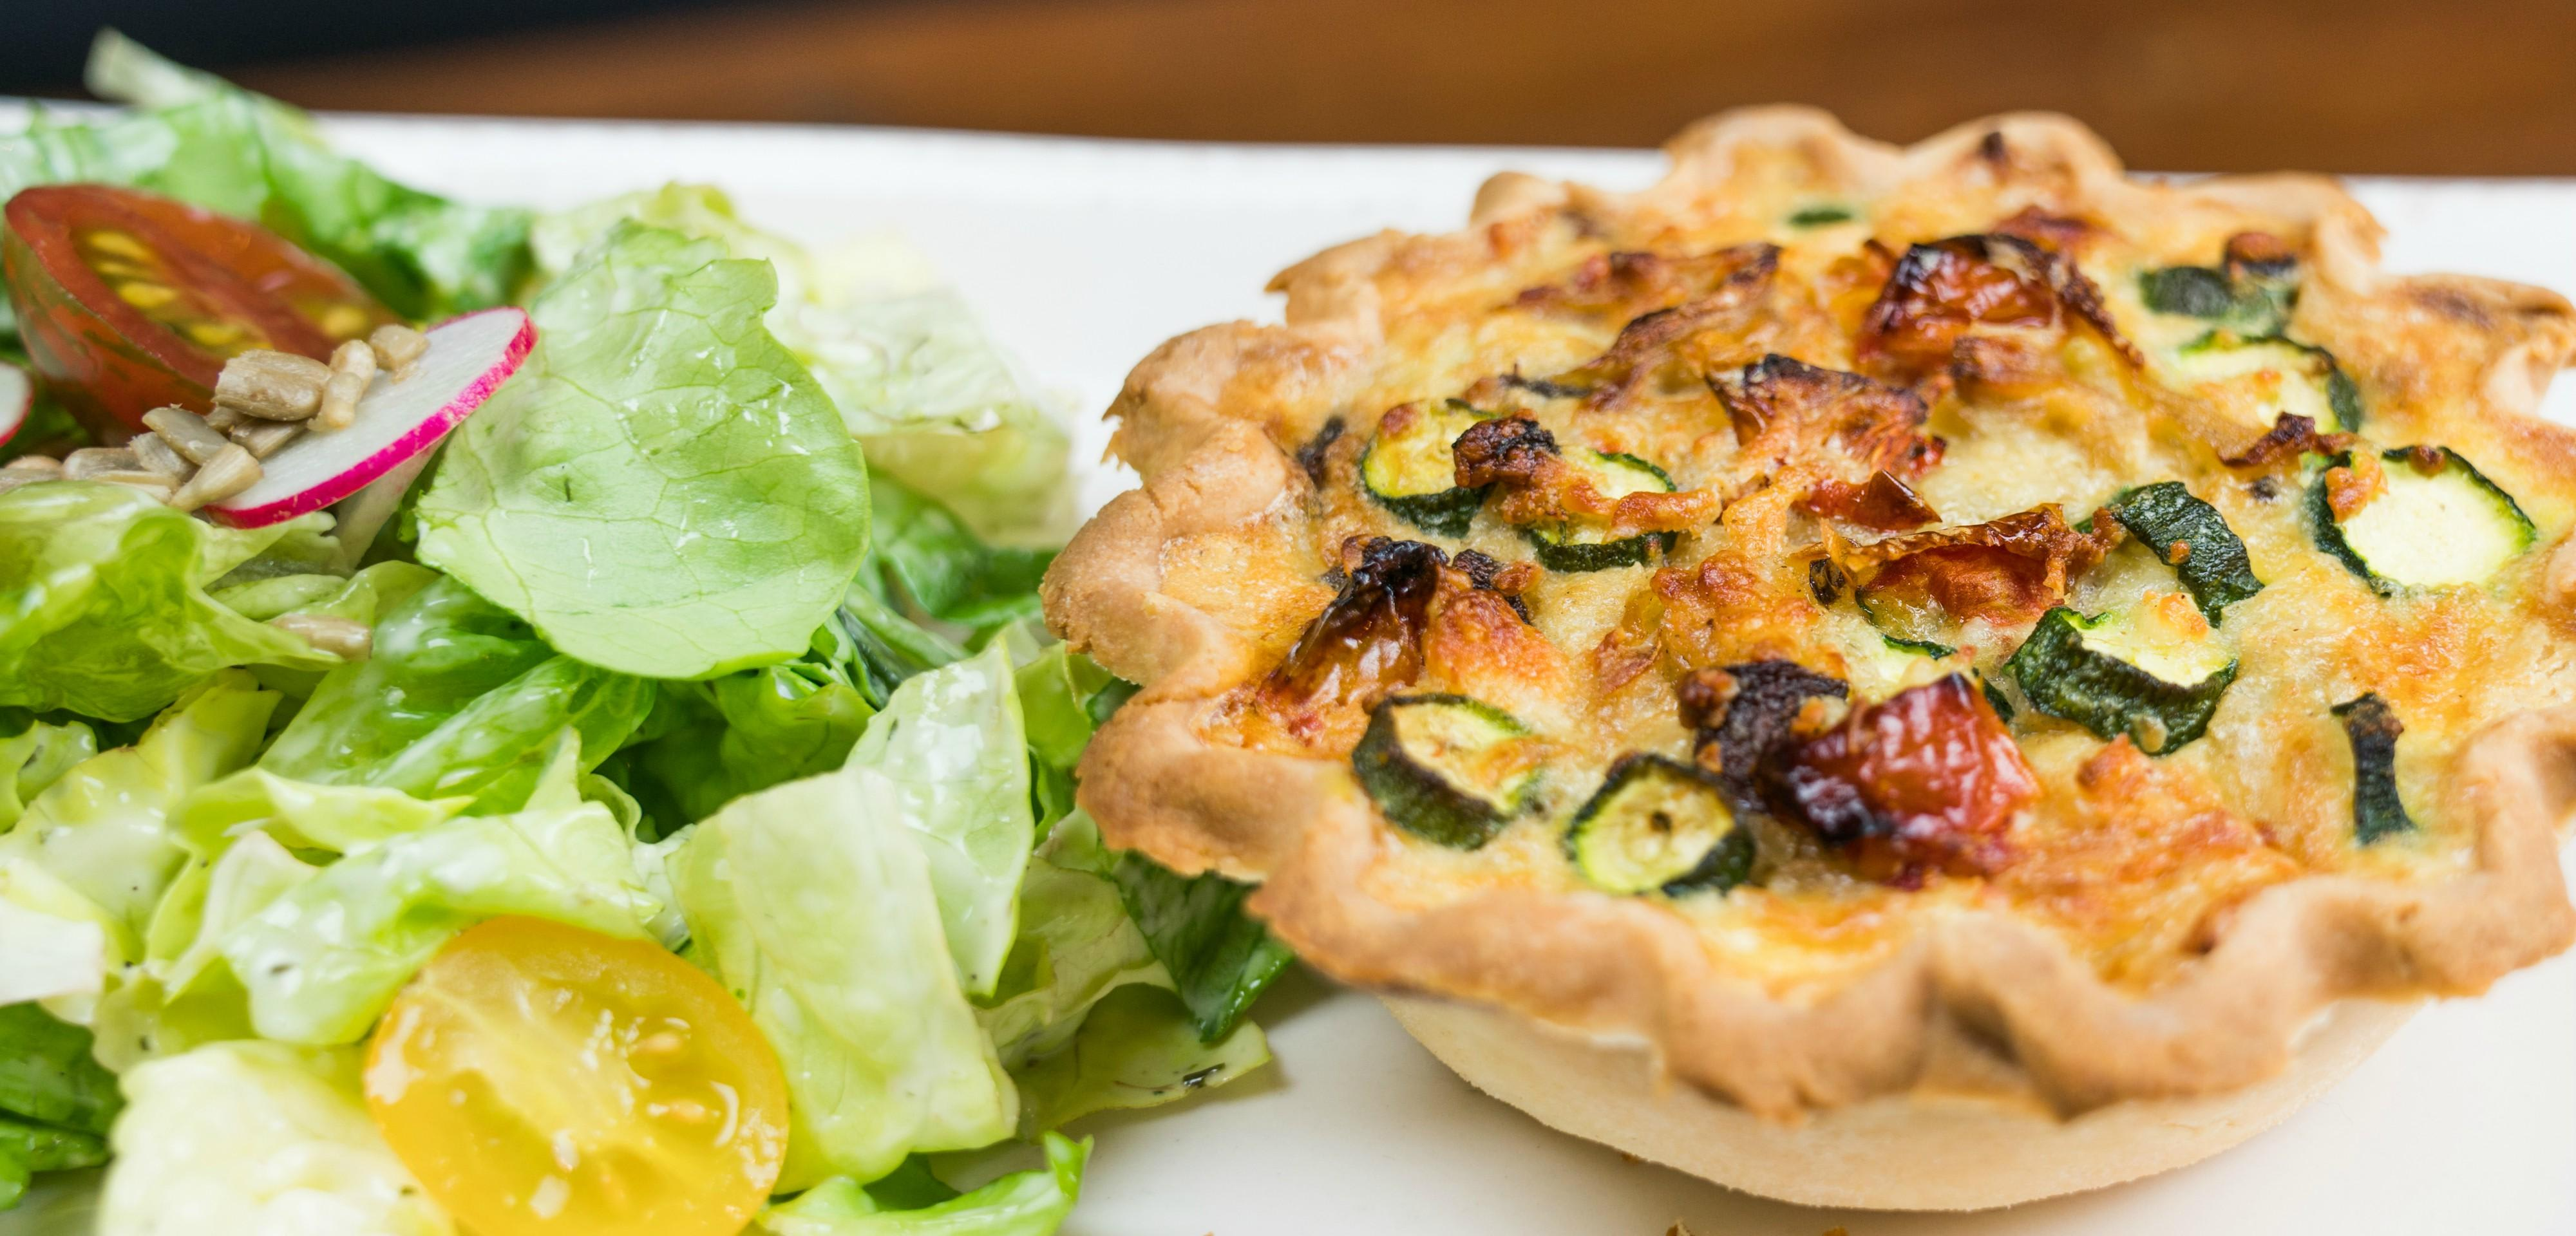 Rancho Quiche Please inquire, served with our house salad at Tonto Bar & Grill